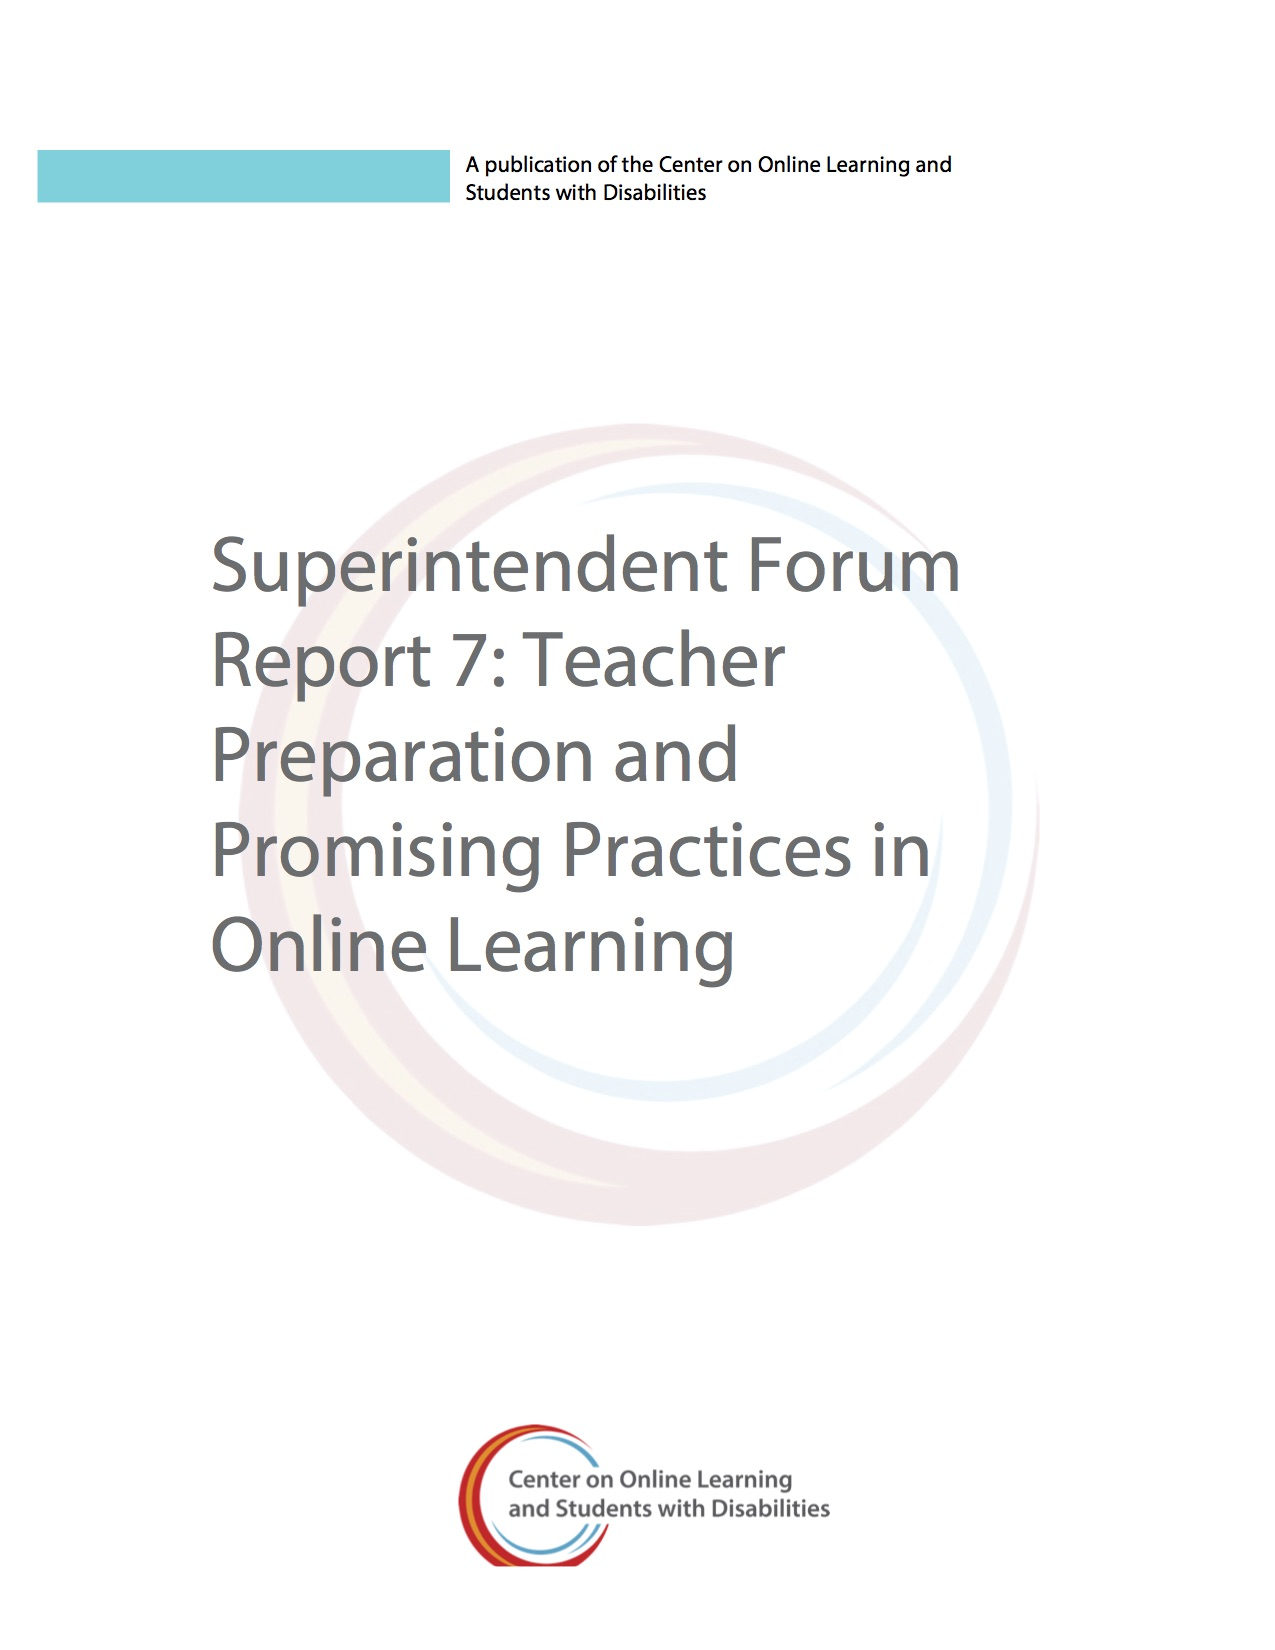 Superintendent Forum Report 7: Teacher Preparation And Promising Practices In Online Learning